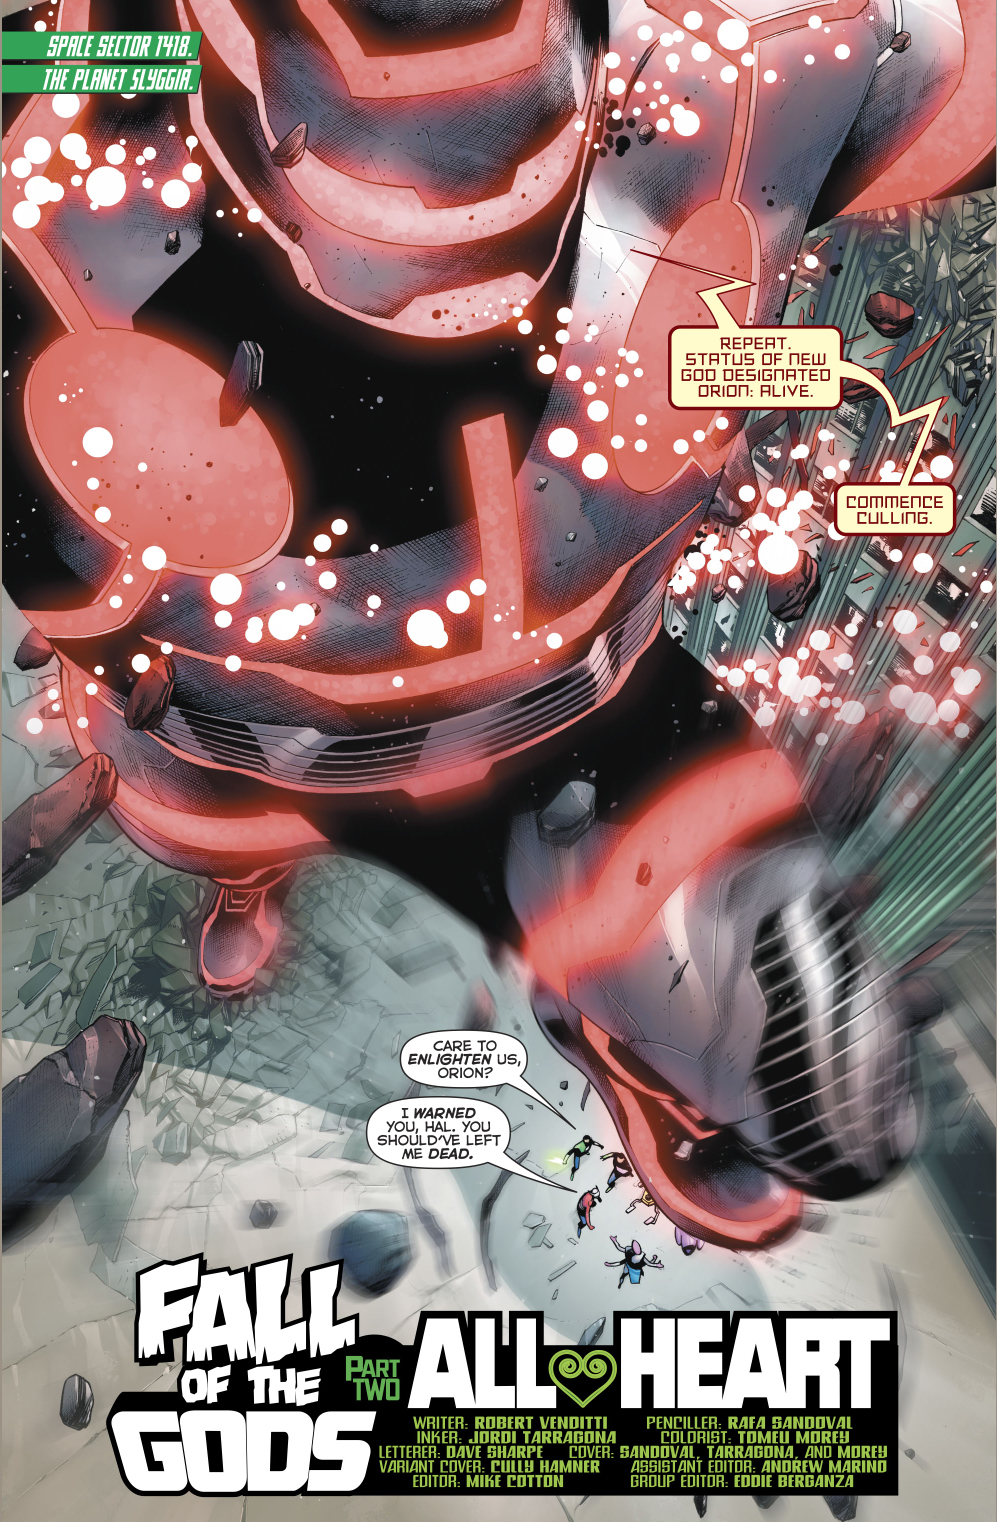 Eschaton Golem (Hal Jordan And The Green Lantern Corps #27)